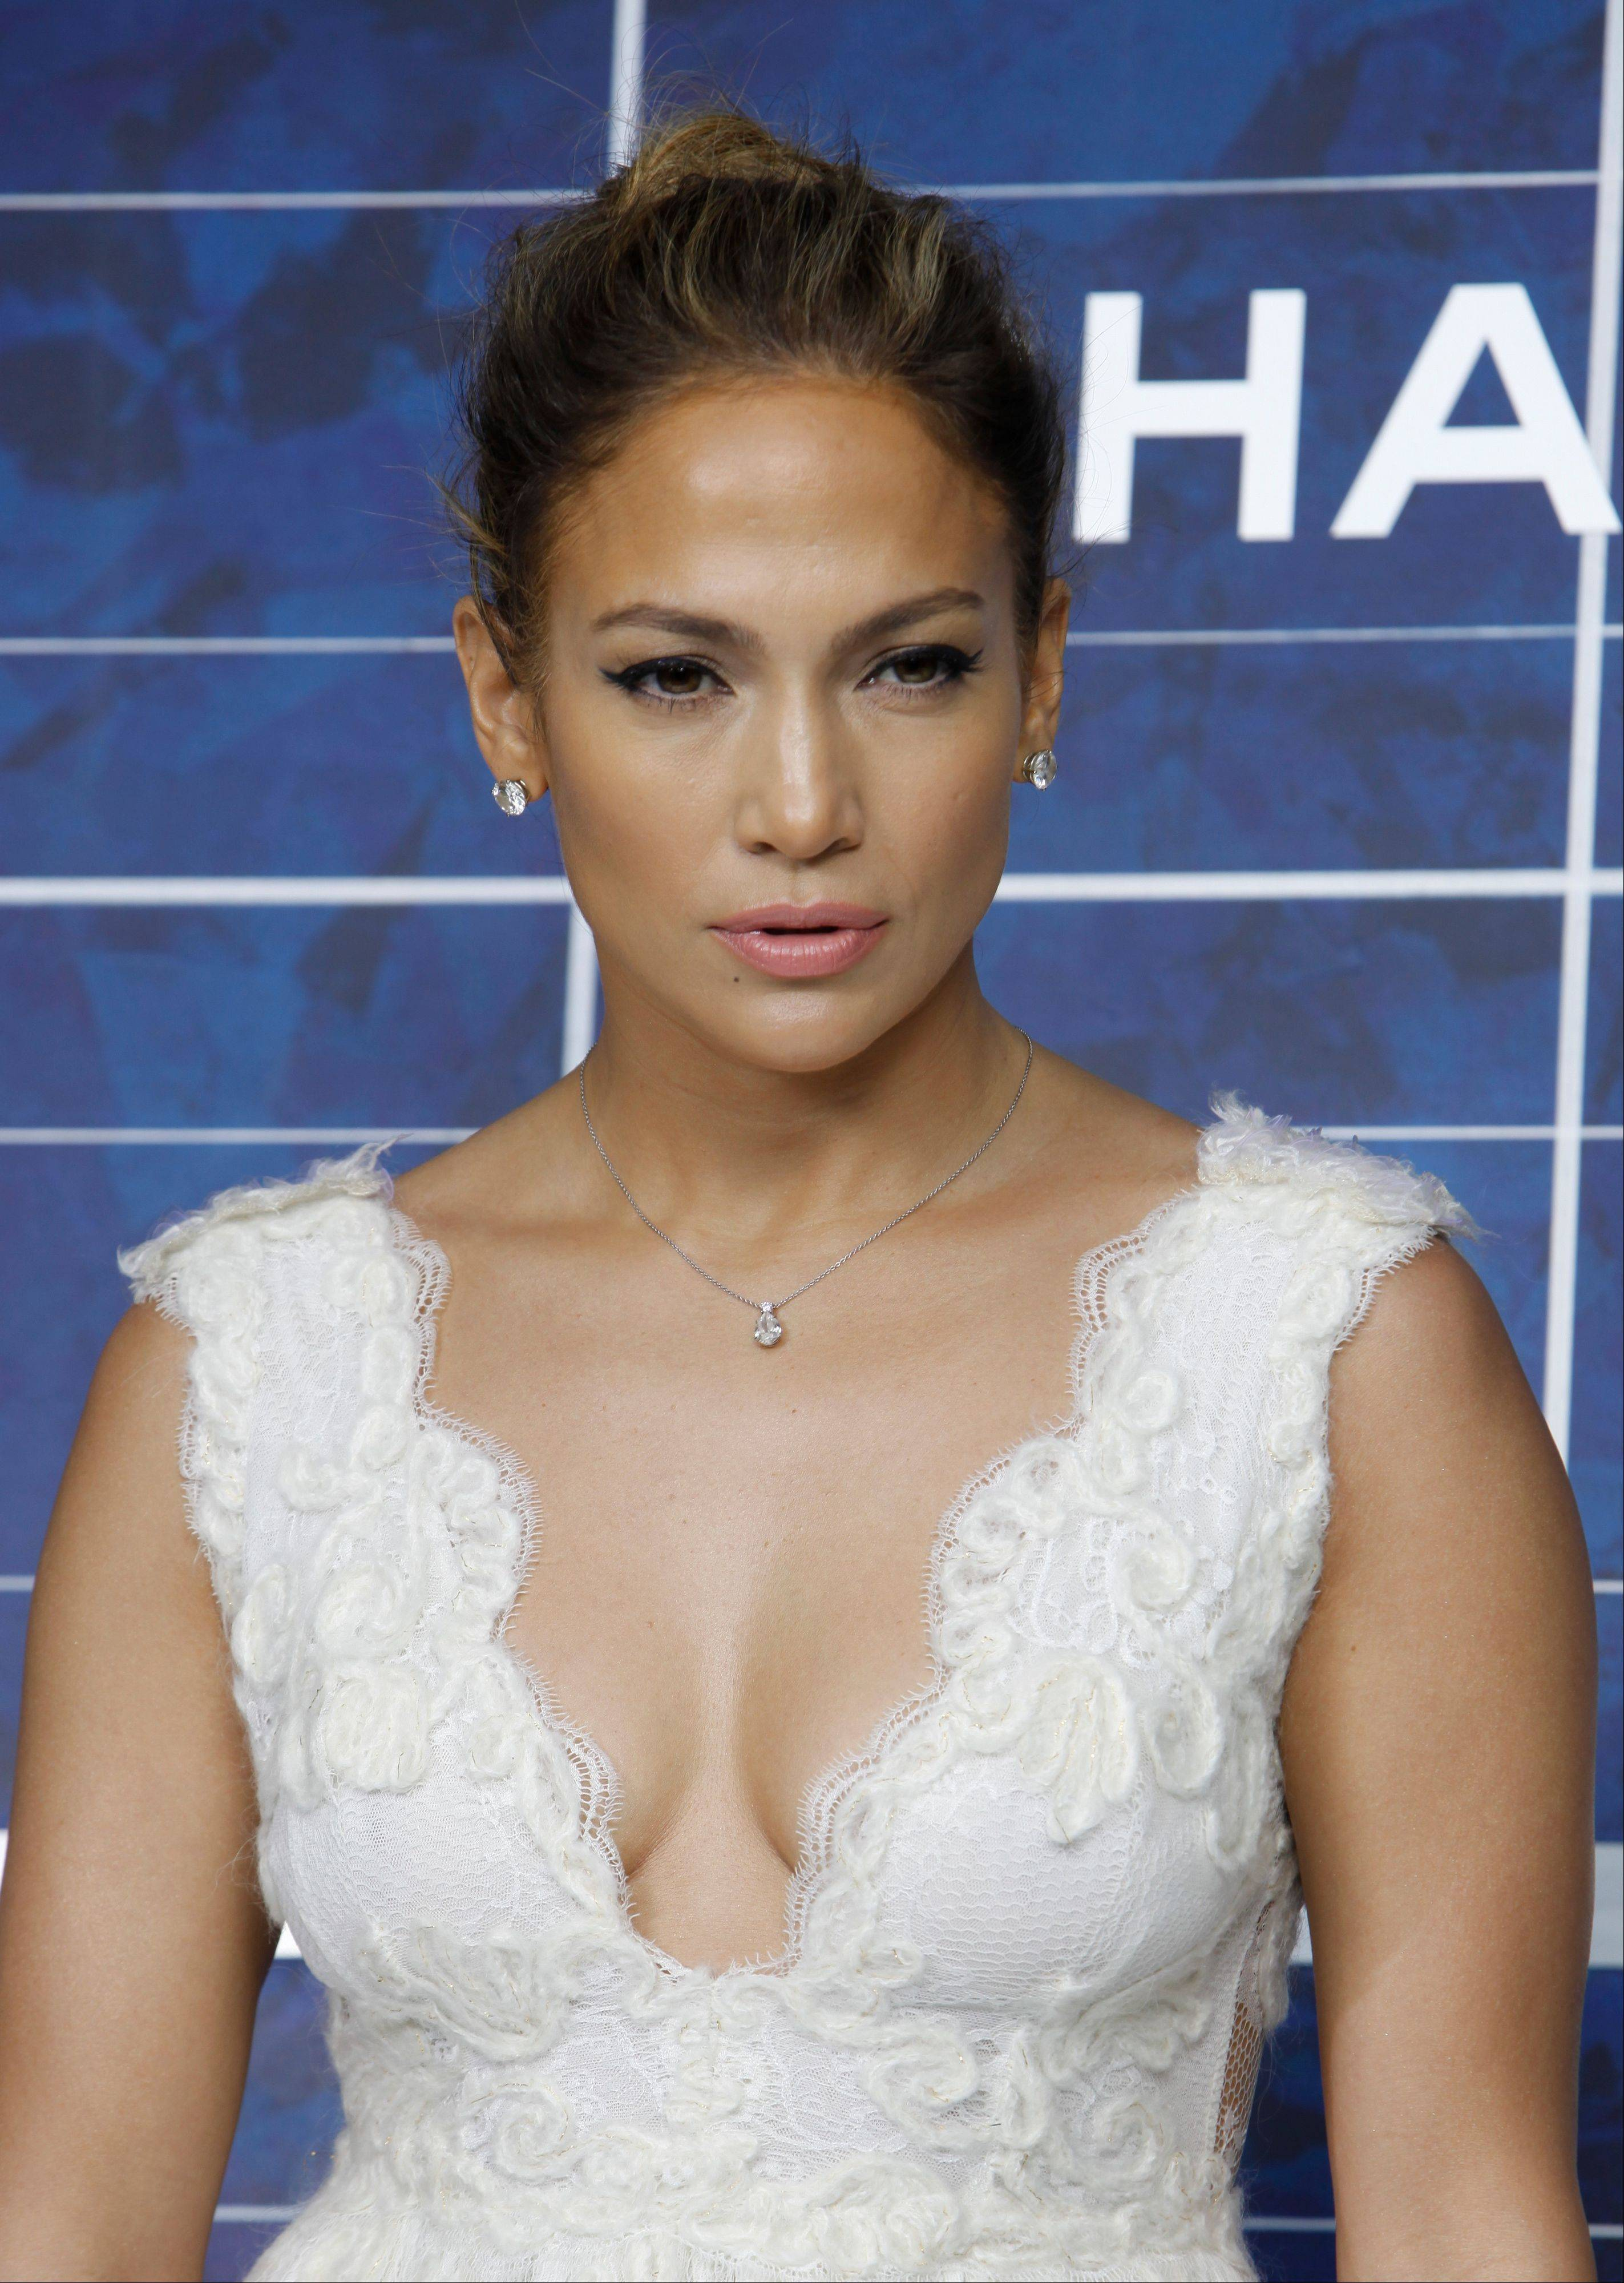 Jennifer Lopez has launched her �J. Lo�s Christmas Gift� drive, asking fans to donate to her three favorite charities (the Boys & Girls Club, the Children�s Hospital of Los Angeles and the American Red Cross). In exchange, she�ll give someone two tickets to the last show of her �Dance Again� world tour in Puerto Rico on Saturday.